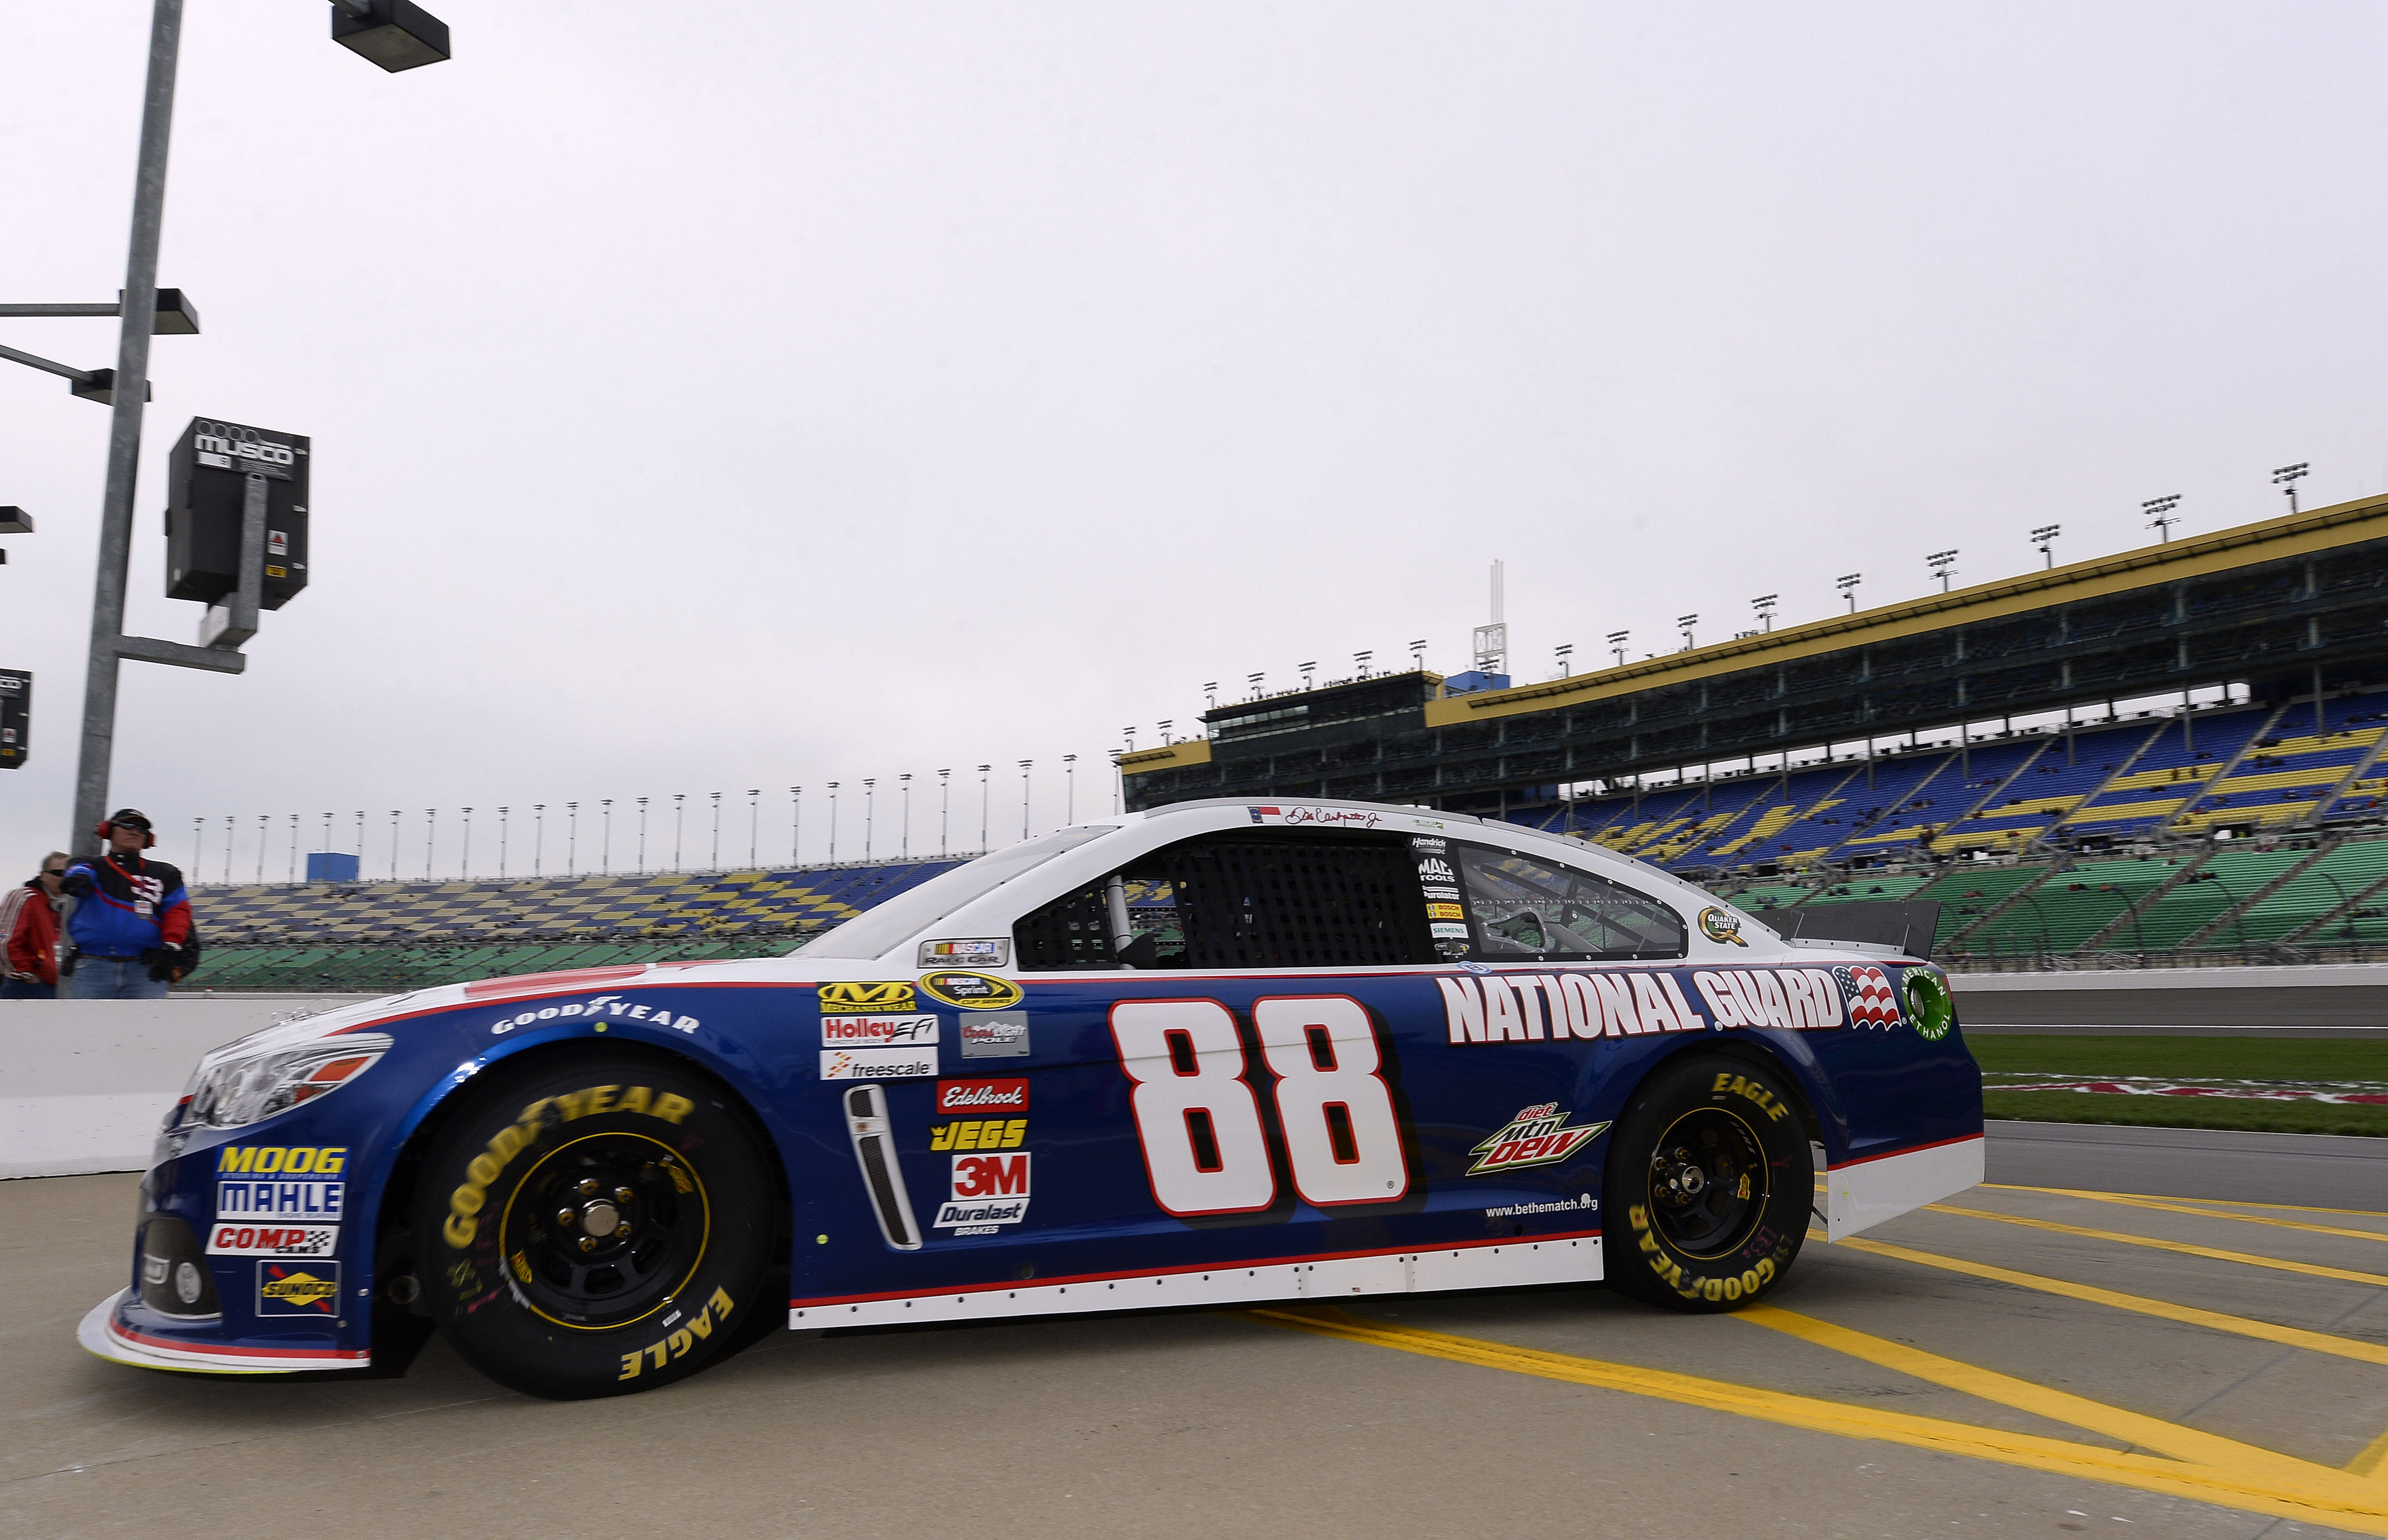 Dale Earnhardt, Jr.'s car at Kansas Speedway. (USA TODAY Sports)